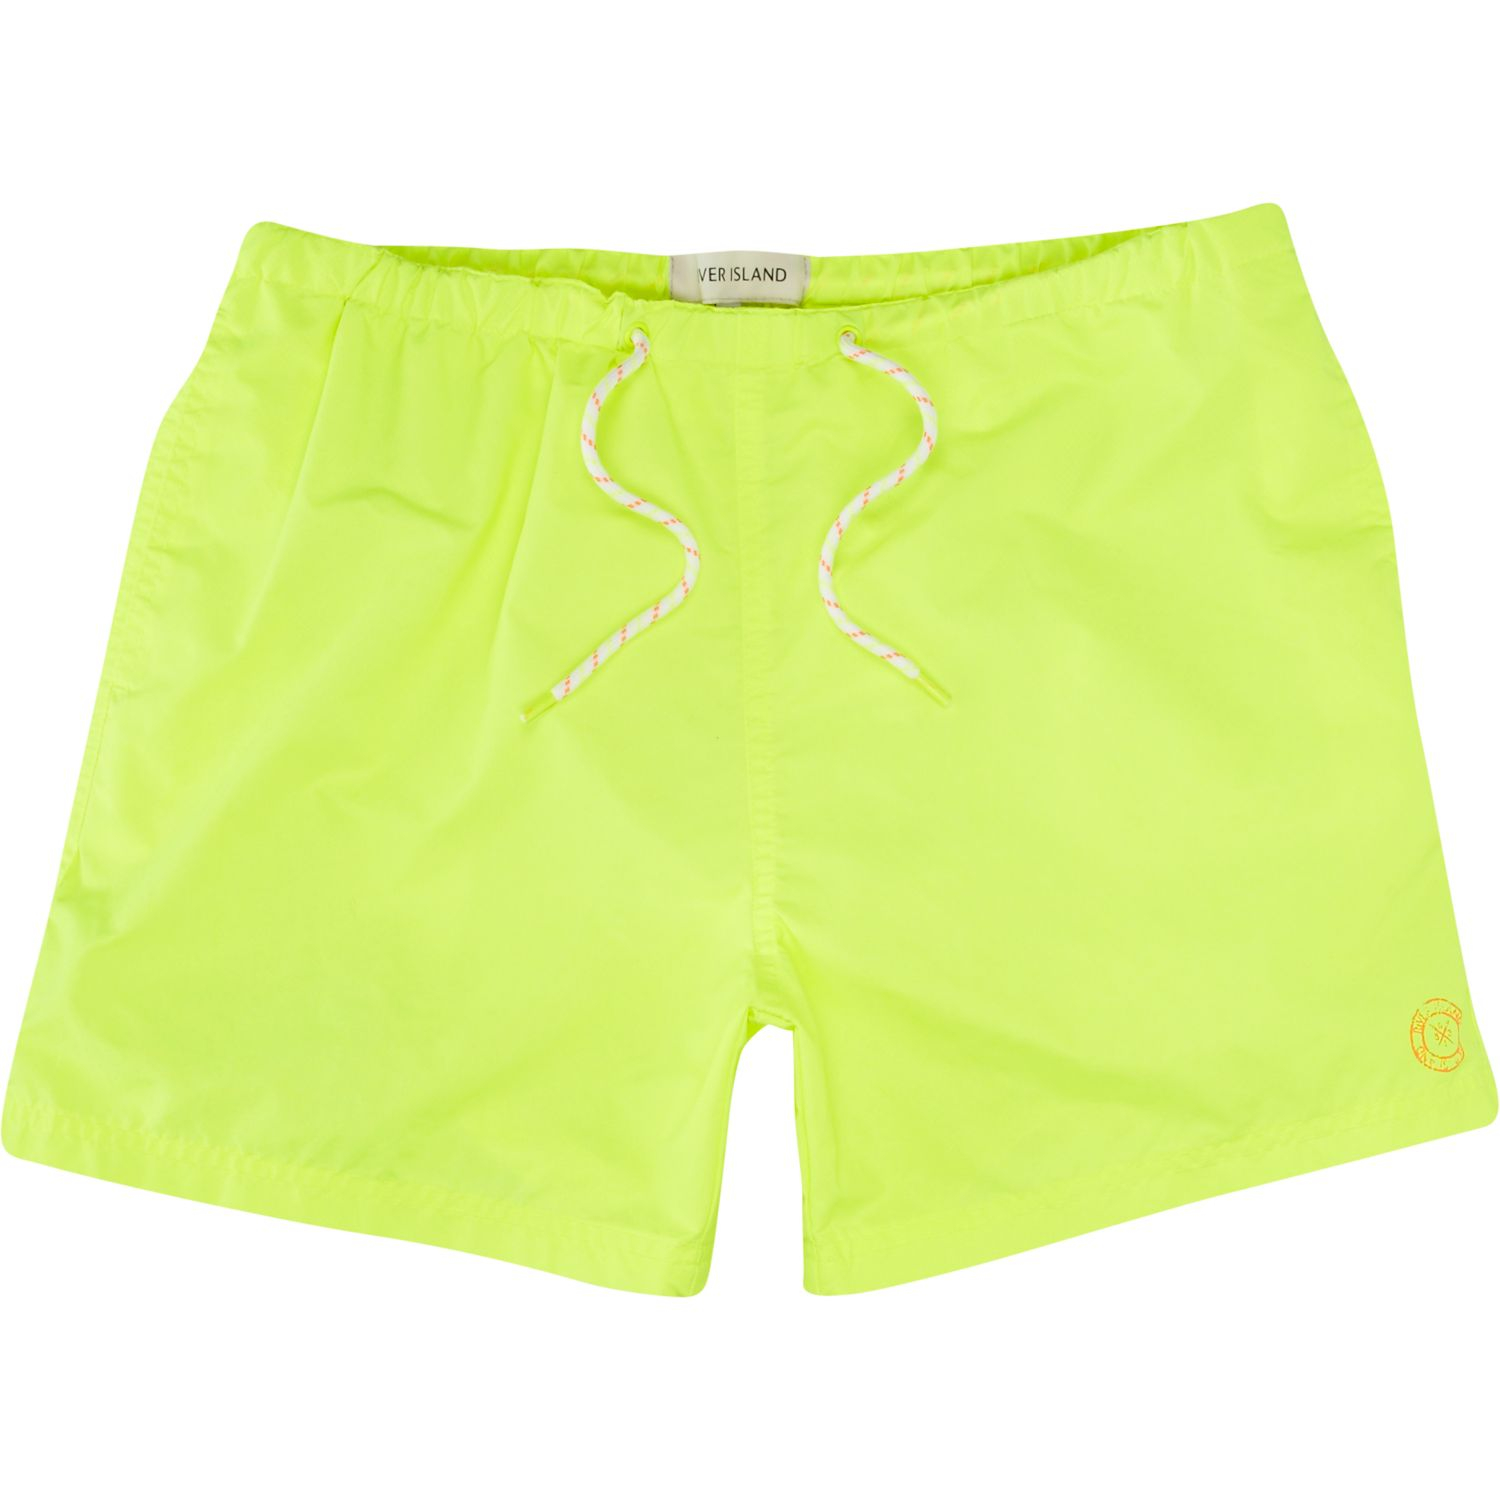 Spandex Shorts. Showing 48 of results that match your query. Search Product Result. Product - Time and Tru Women's Bermuda Shorts. Clearance. Product Image. Price $ 6. Augusta LADIES ENTHUSE SHORT BLACK M. Product - Woodland Camo Women's Shorts. Product Image. Price $ Product Title.